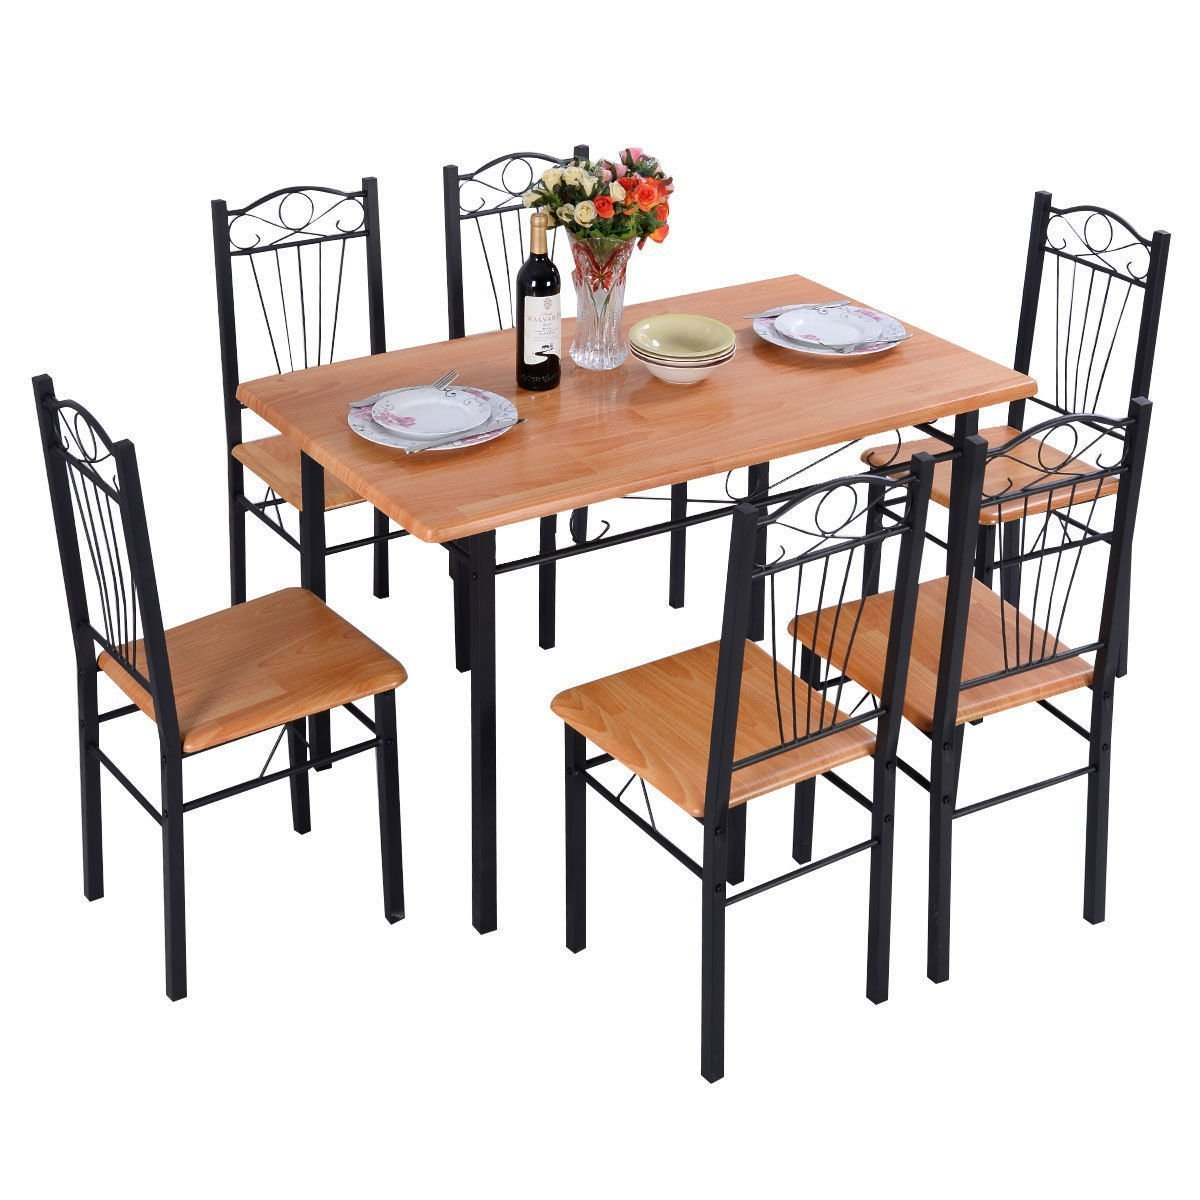 Yopih Steel Frame Dining Set Table and Chairs Kitchen Modern Furniture Bistro Wood (1 Table With 4Chairs)